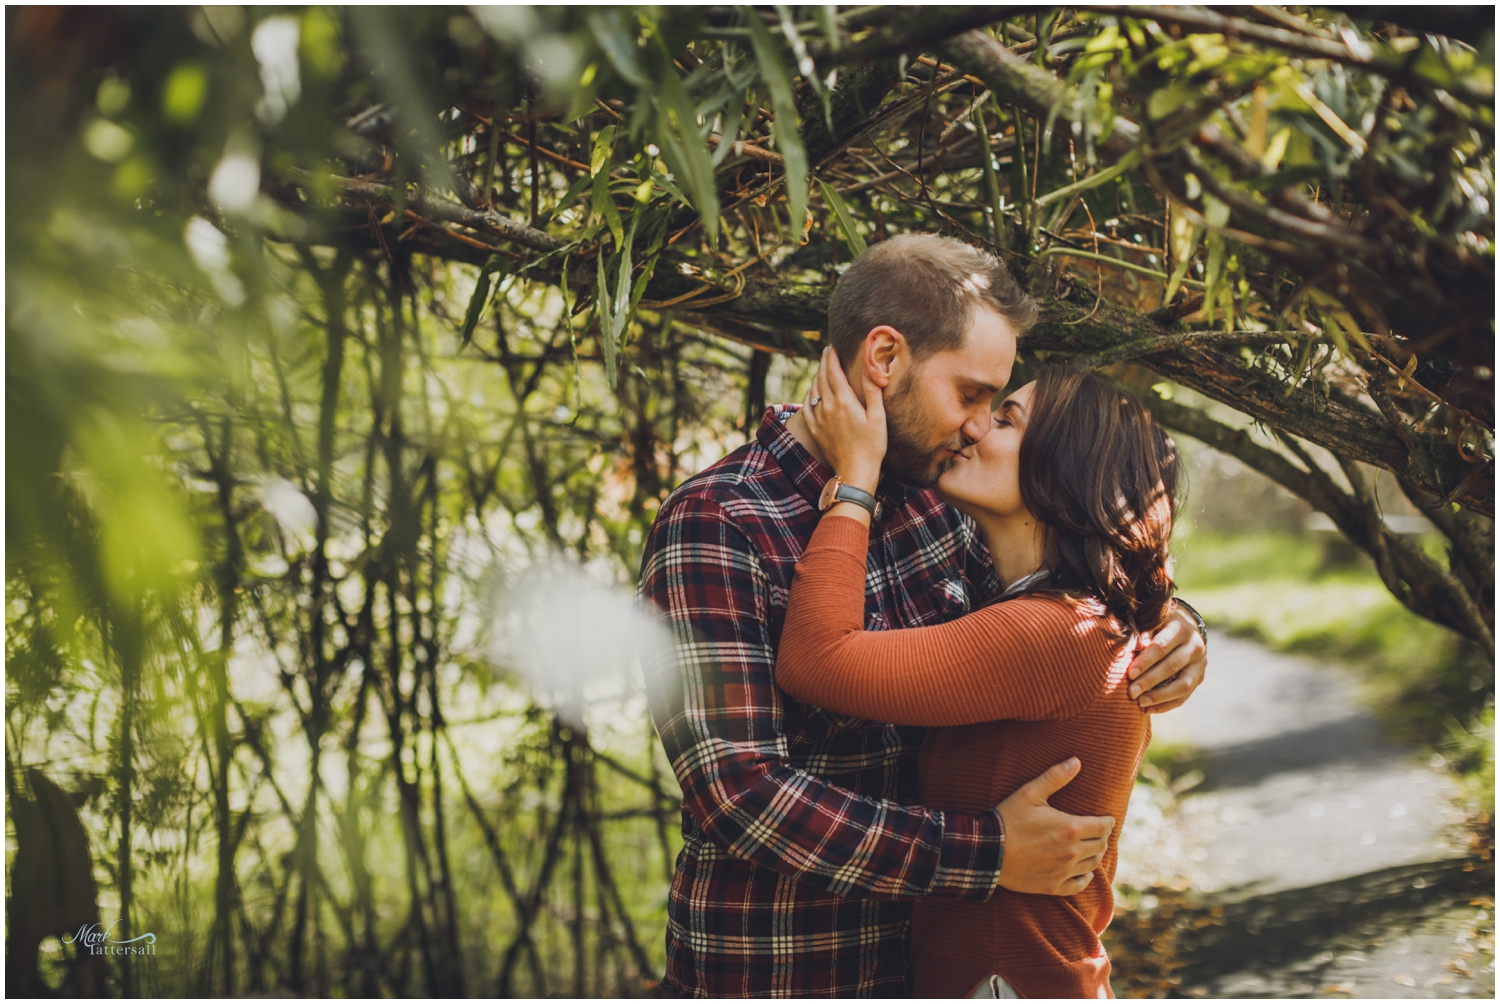 Couple posing tips Pre wedding shoot ideas - Mark Tattersall